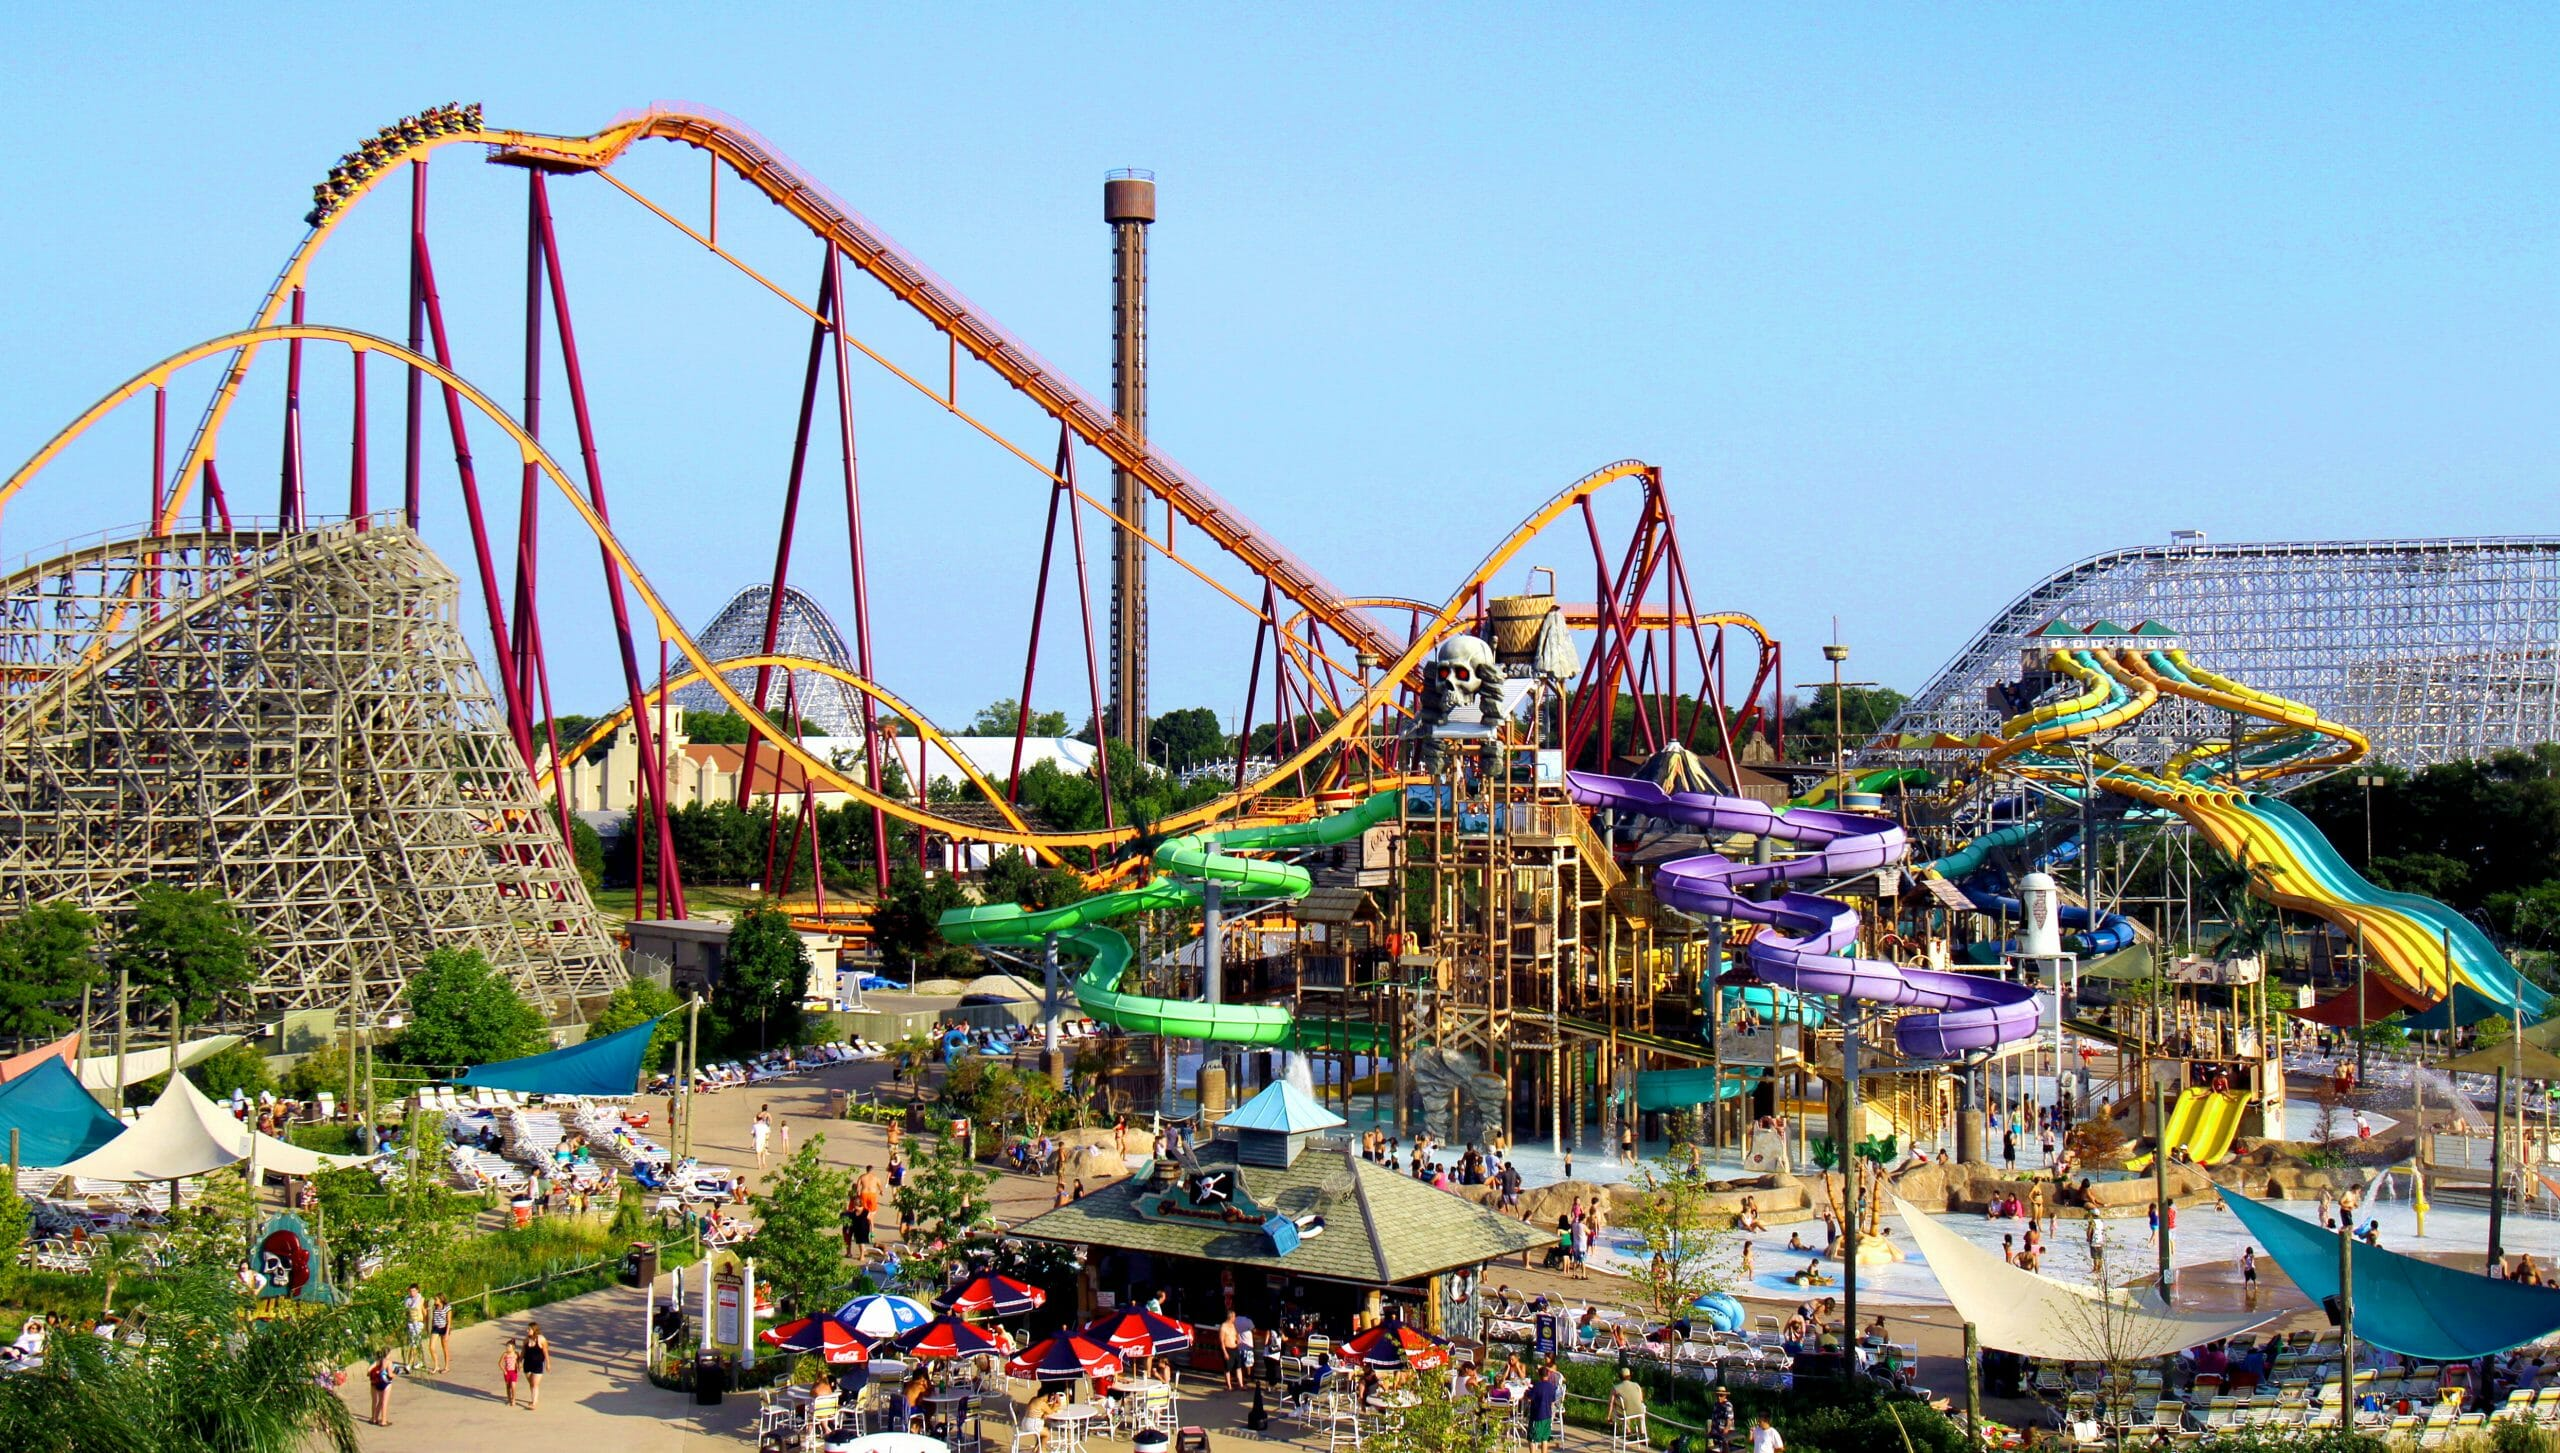 Six Flags Great America Reopening With Hurricane Harbor As A Separate Park